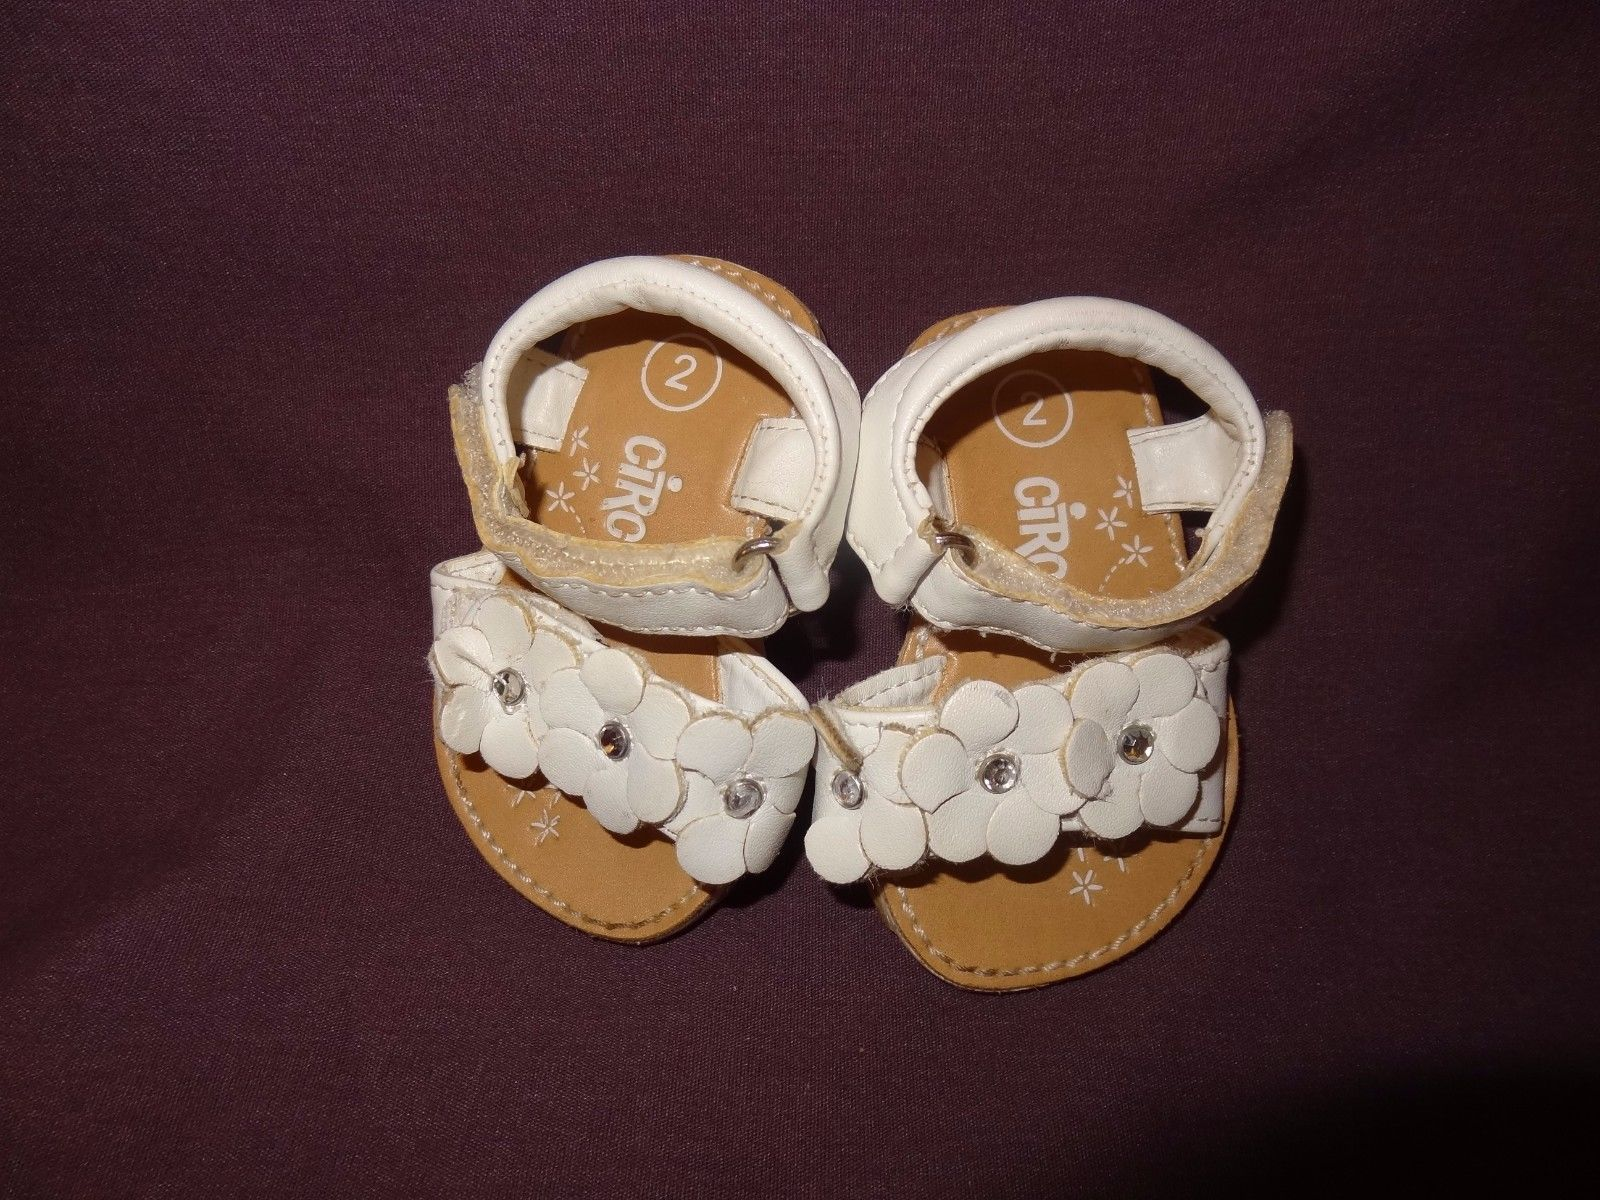 13c841d6ce2f Sandals Shoes White Size 2 or 6 - 9 Months Baby Girls Circo Flowers 2009  Target